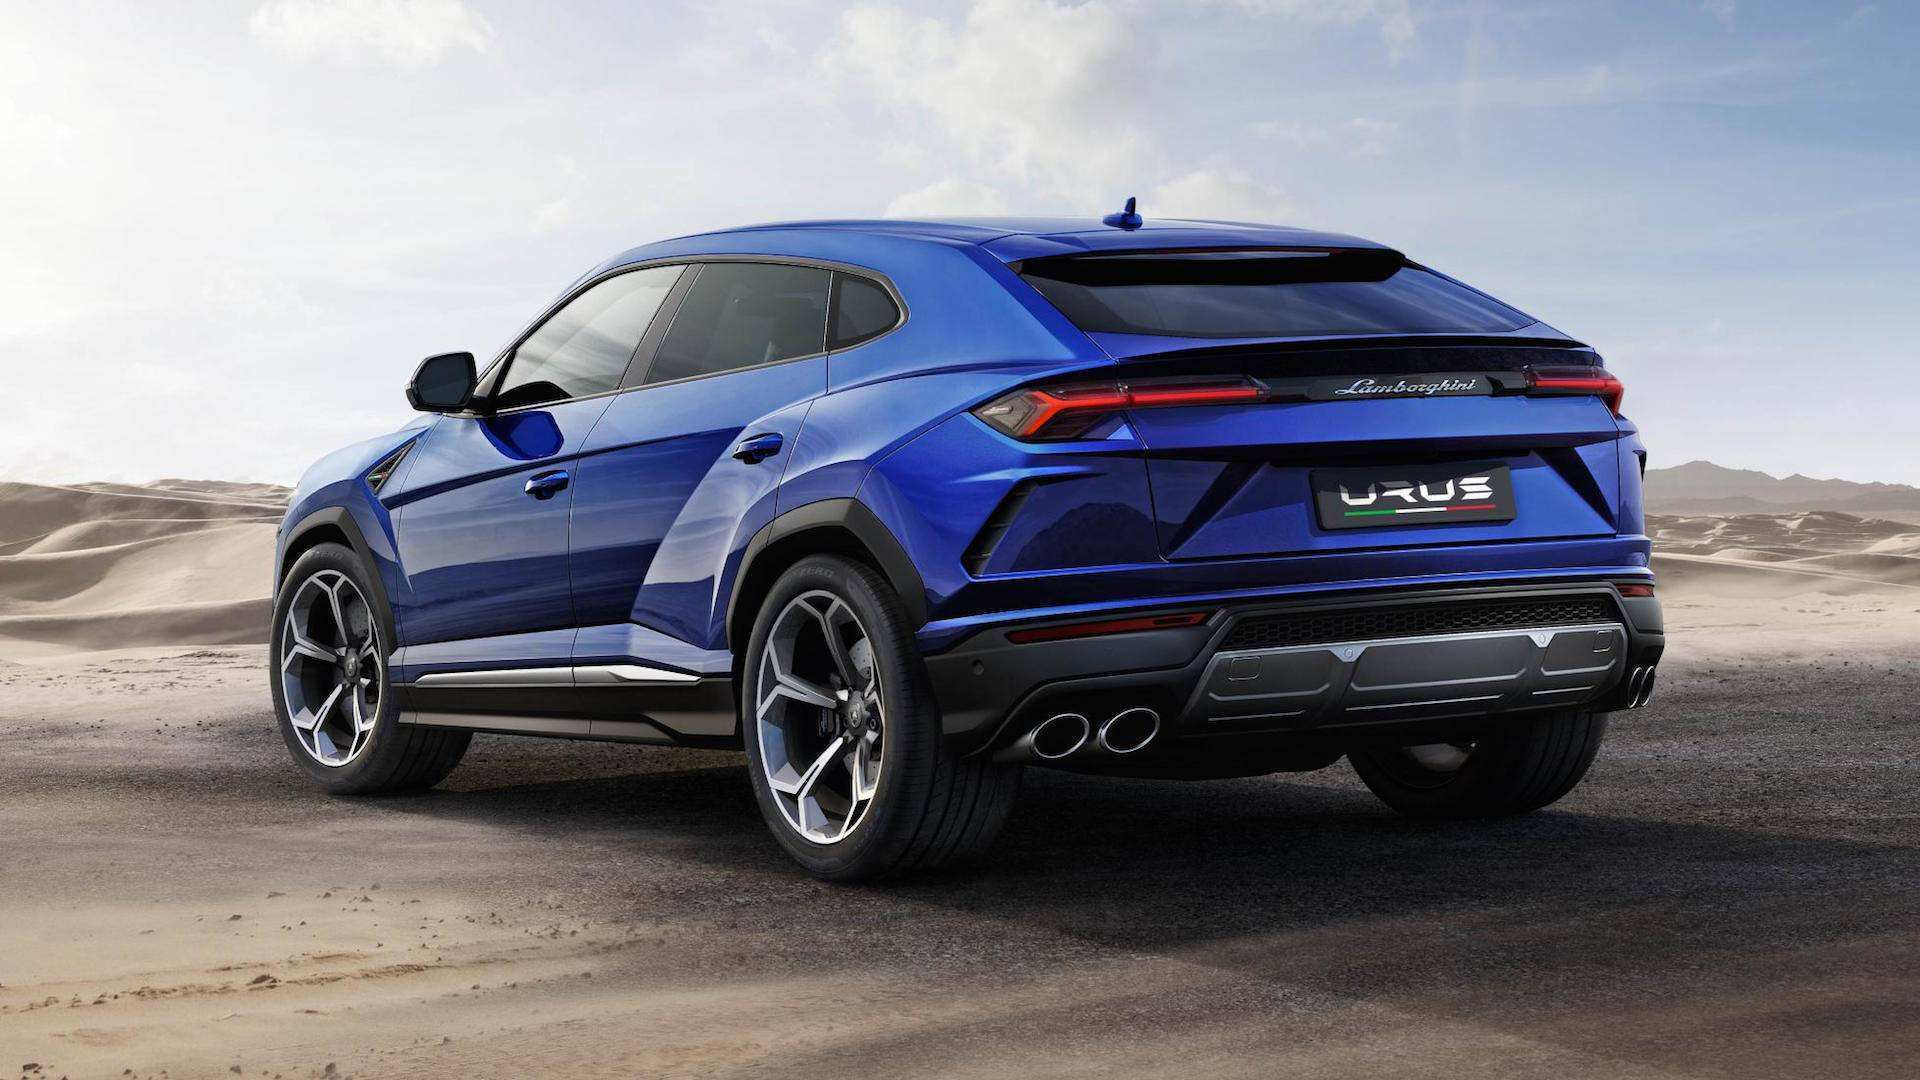 92 Best Review 2019 Lamborghini Urus Price Picture by 2019 Lamborghini Urus Price